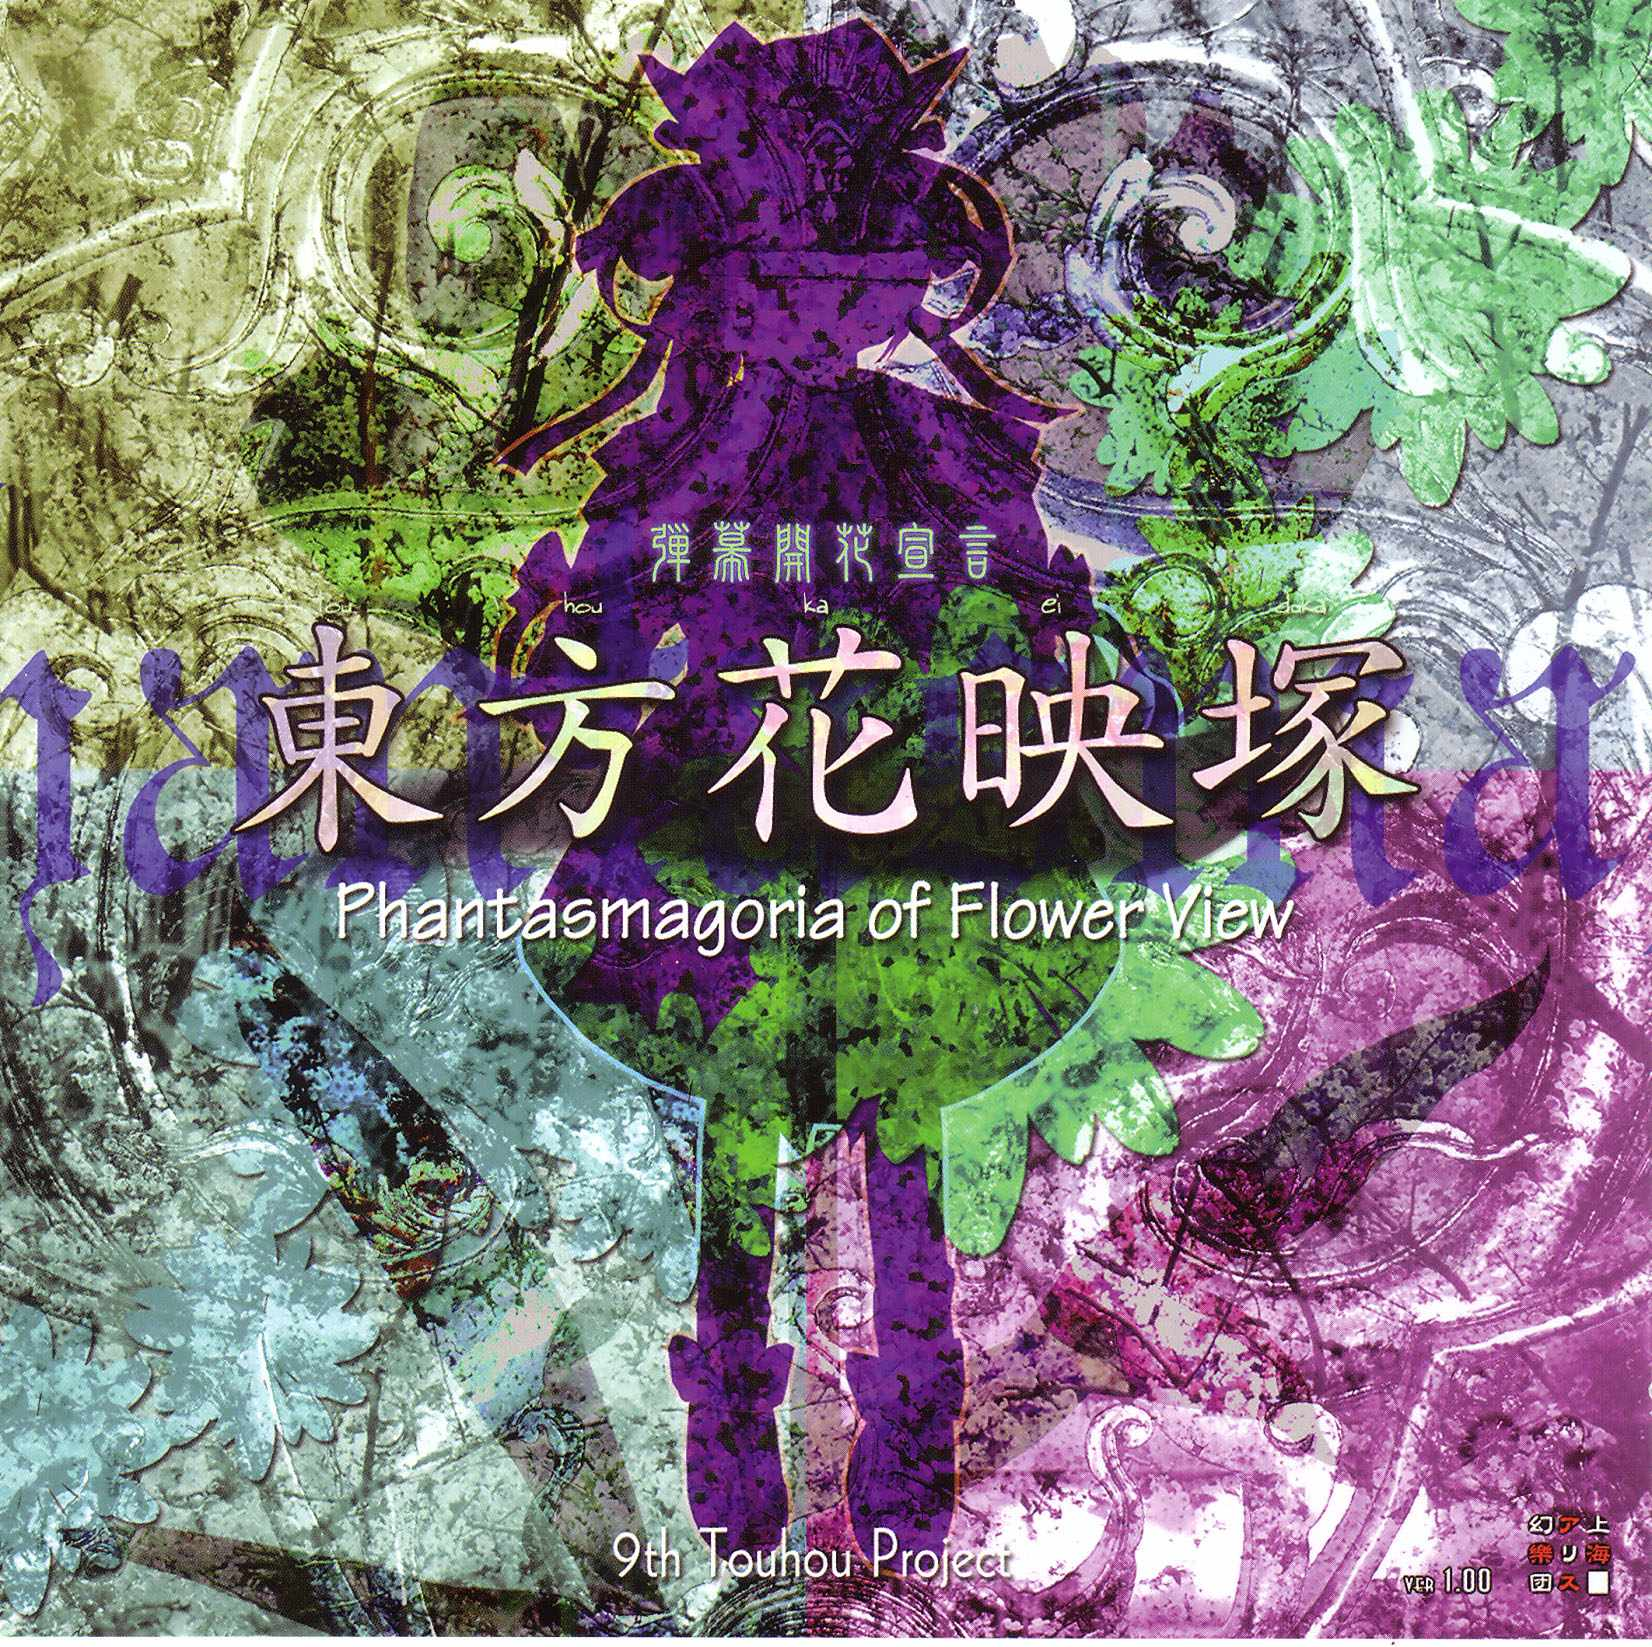 Touhou Kaeizuka: Phantasmagoria of Flower View